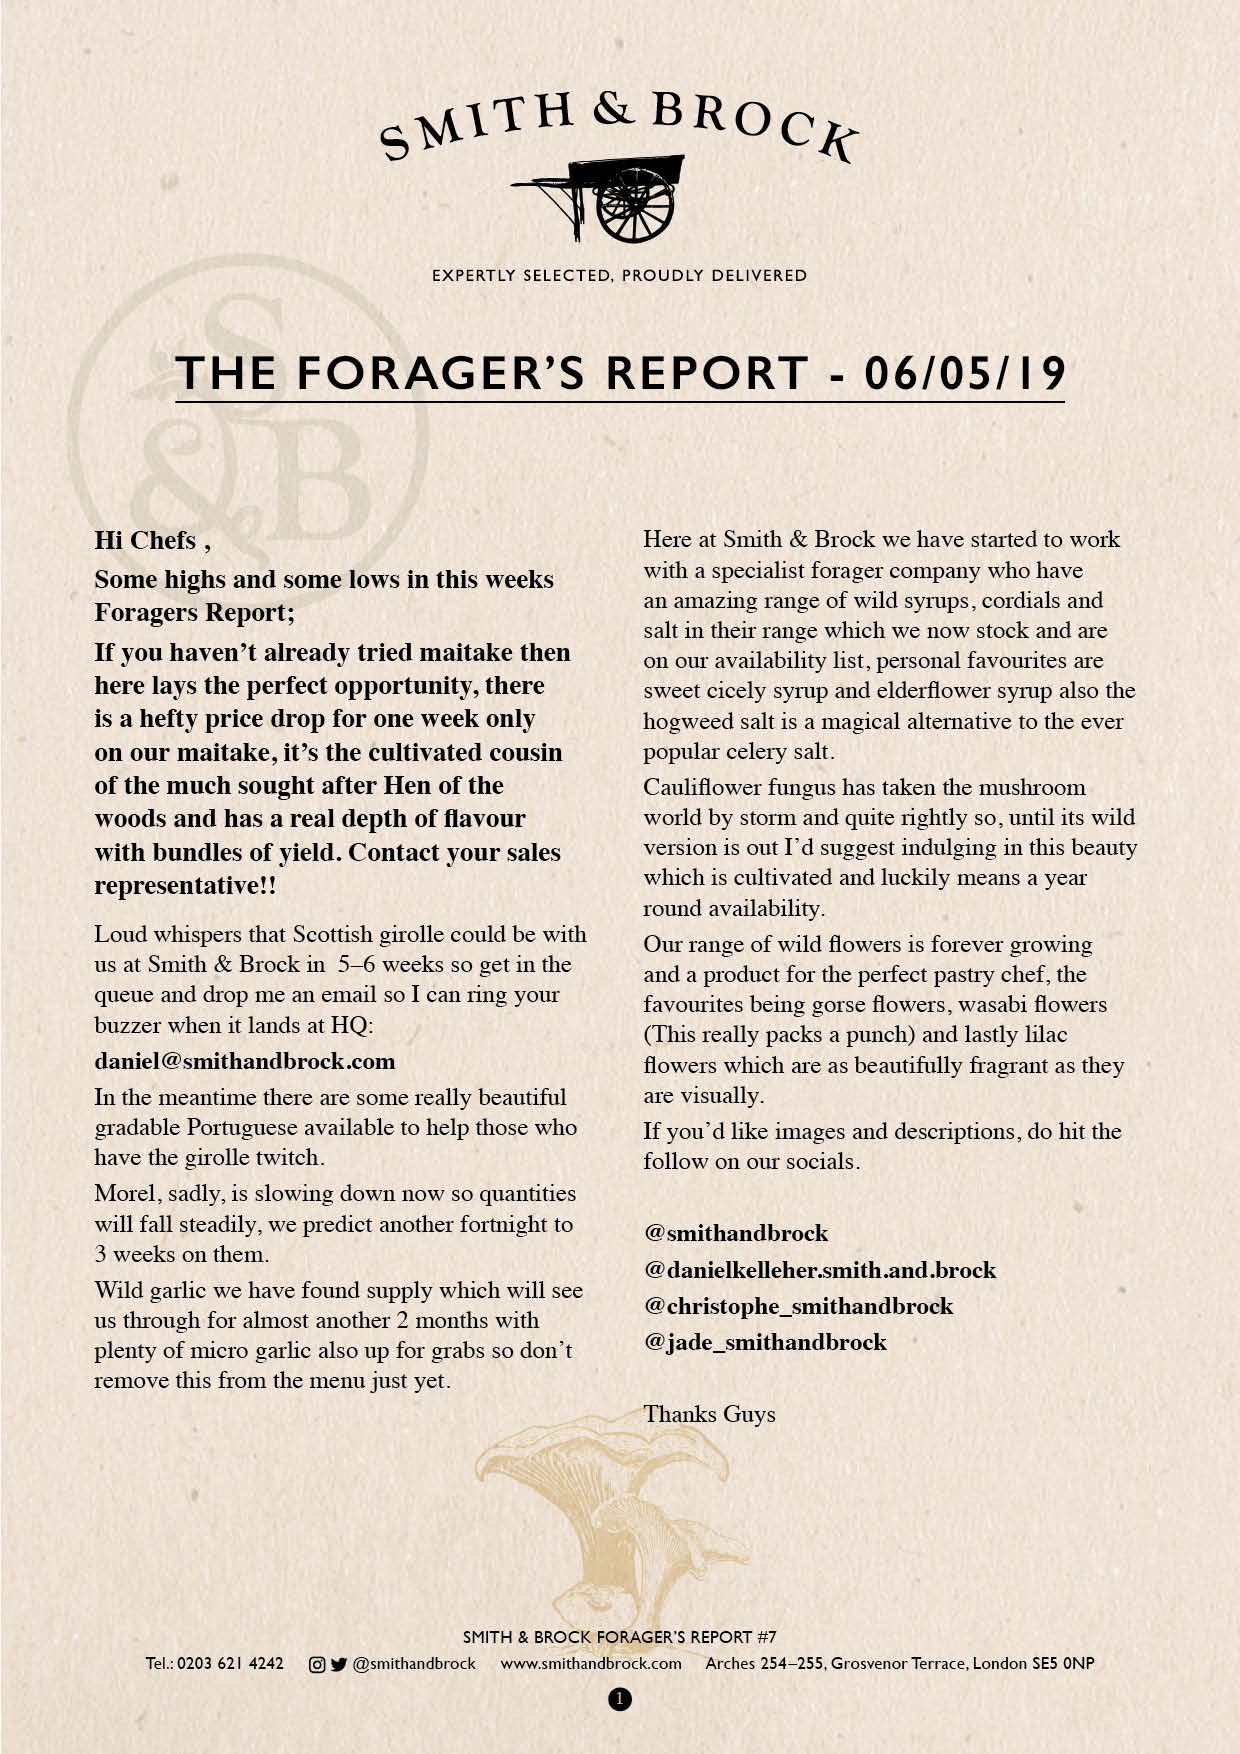 Smith&Brock Foraged Products Report 06 May 2019 7